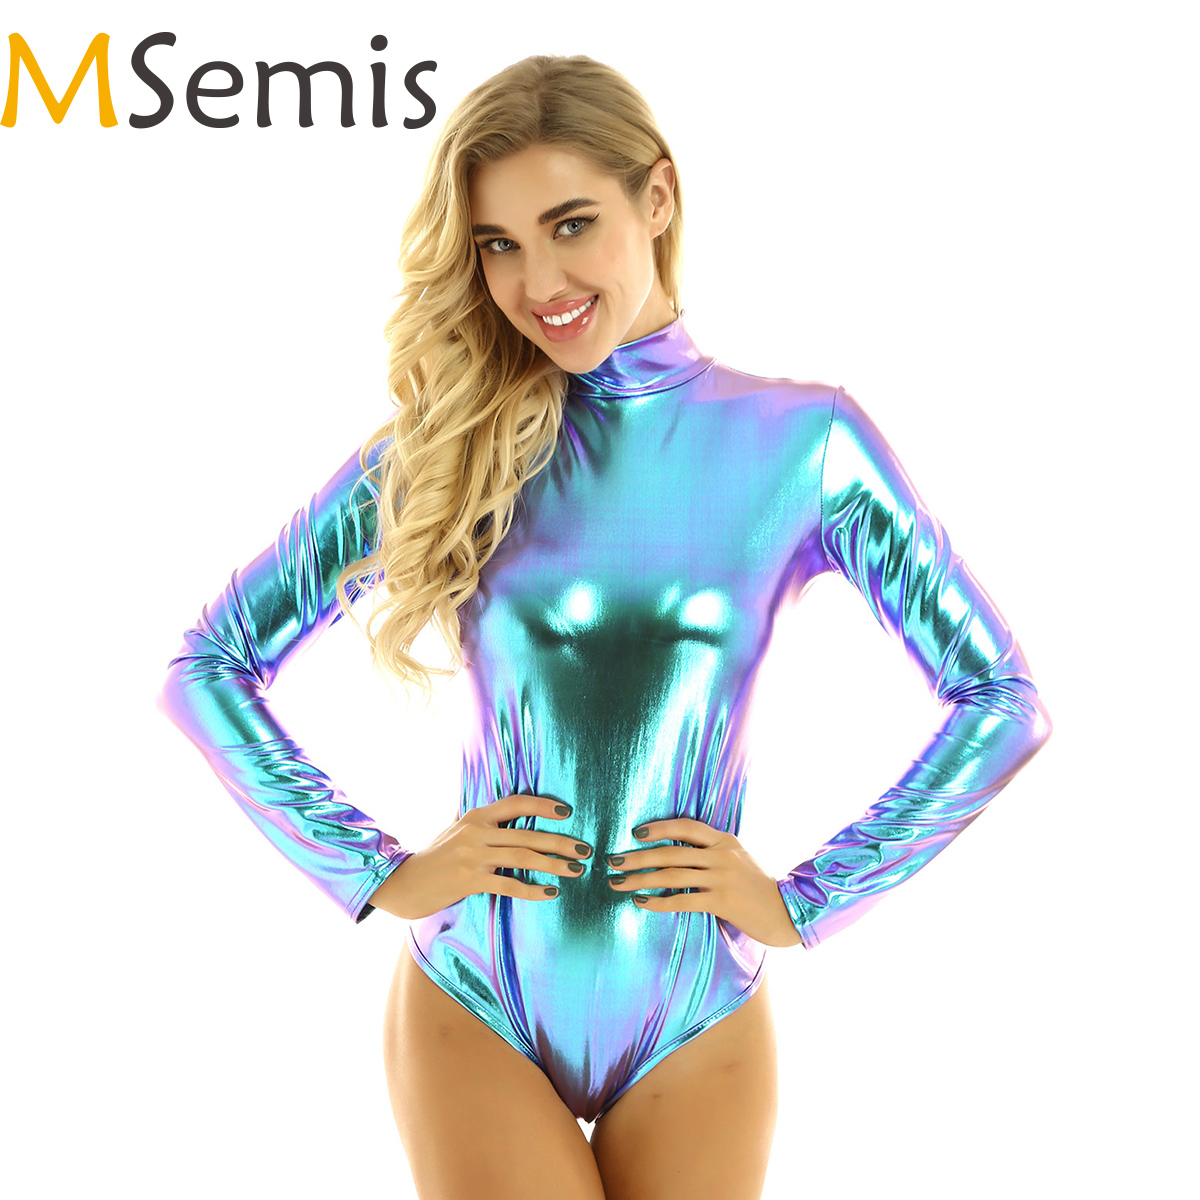 MSemis Women Metallic Holographic Clothes Gymnastic Leotard Bodysuit Clubwear Musical Festival Rave Costumes Pole Dance Clothing